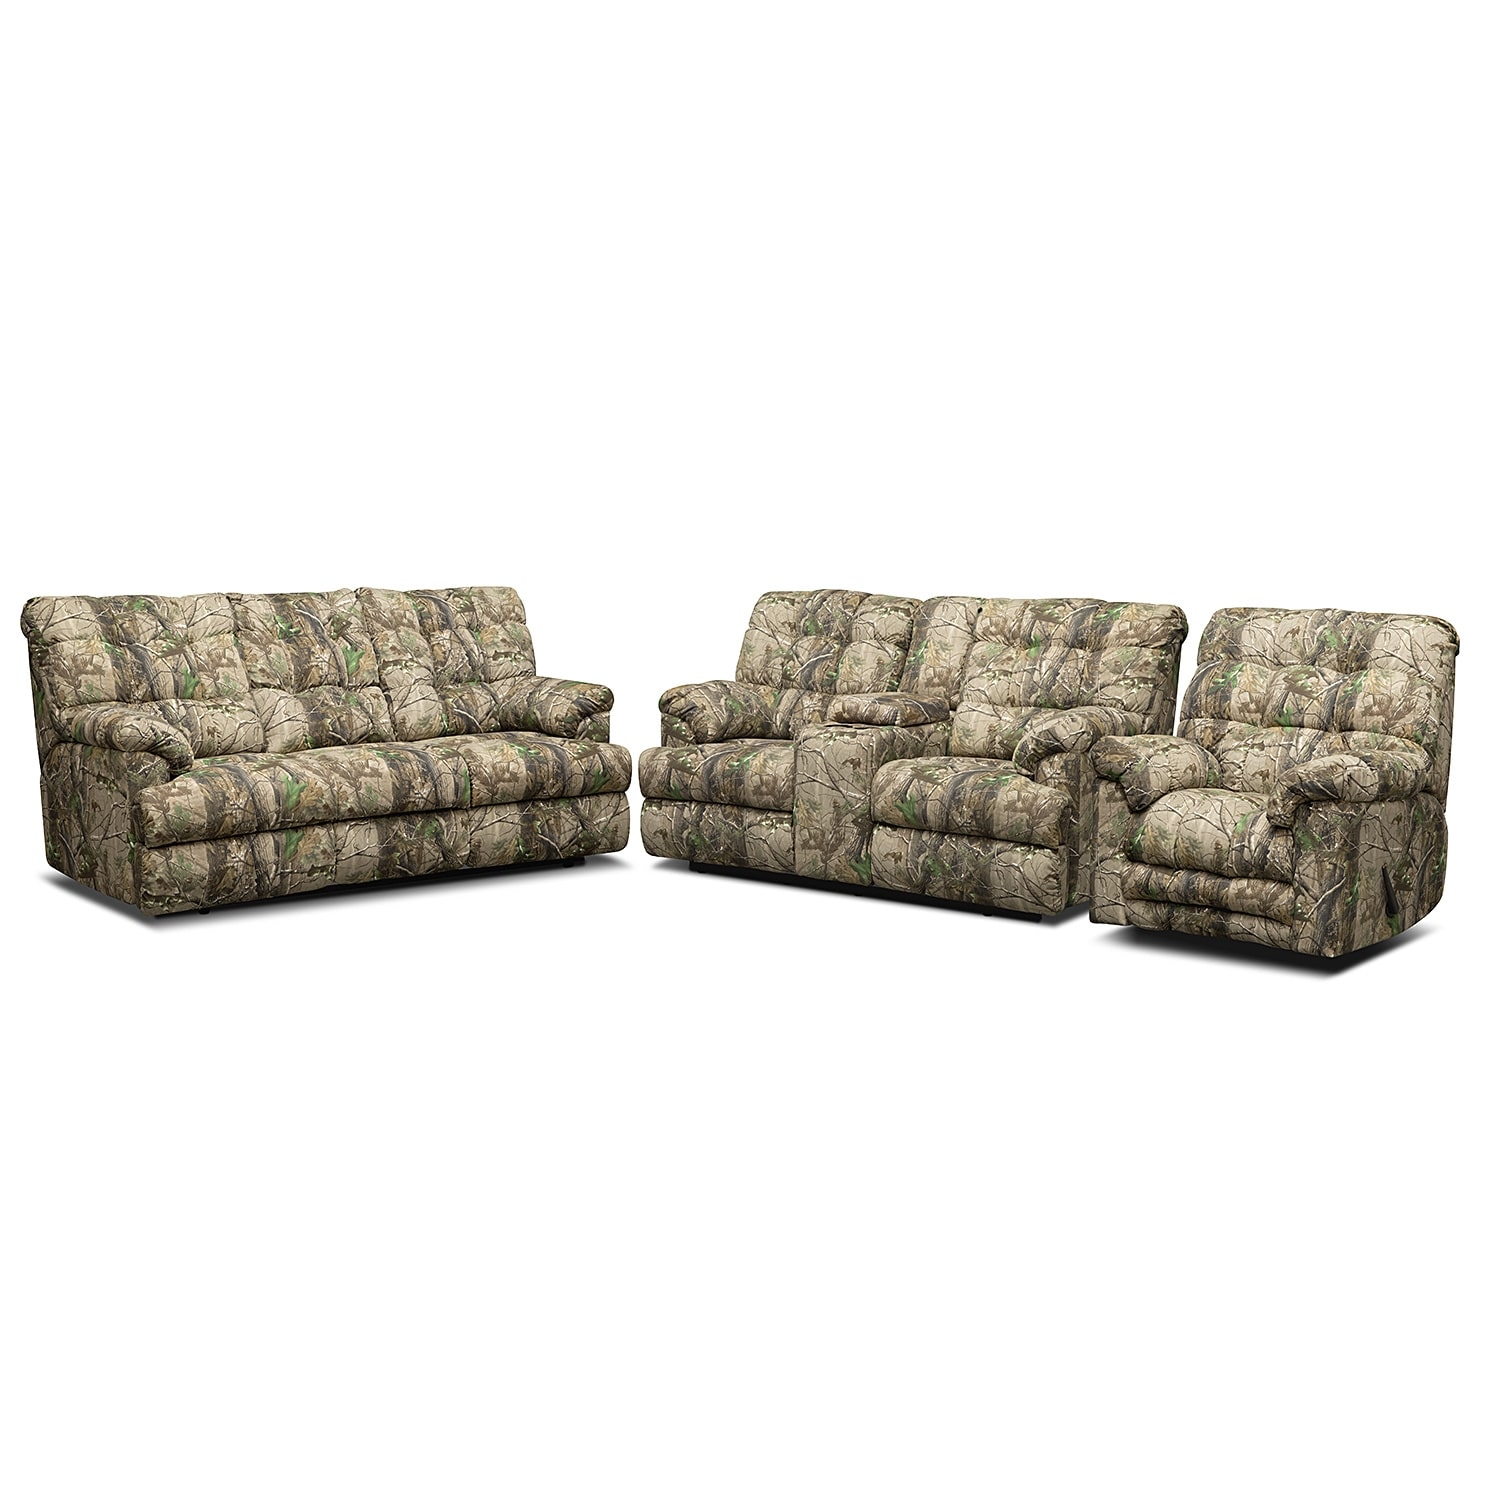 Living Room Furniture - Jasper Bay 3 Pc. Reclining Living Room